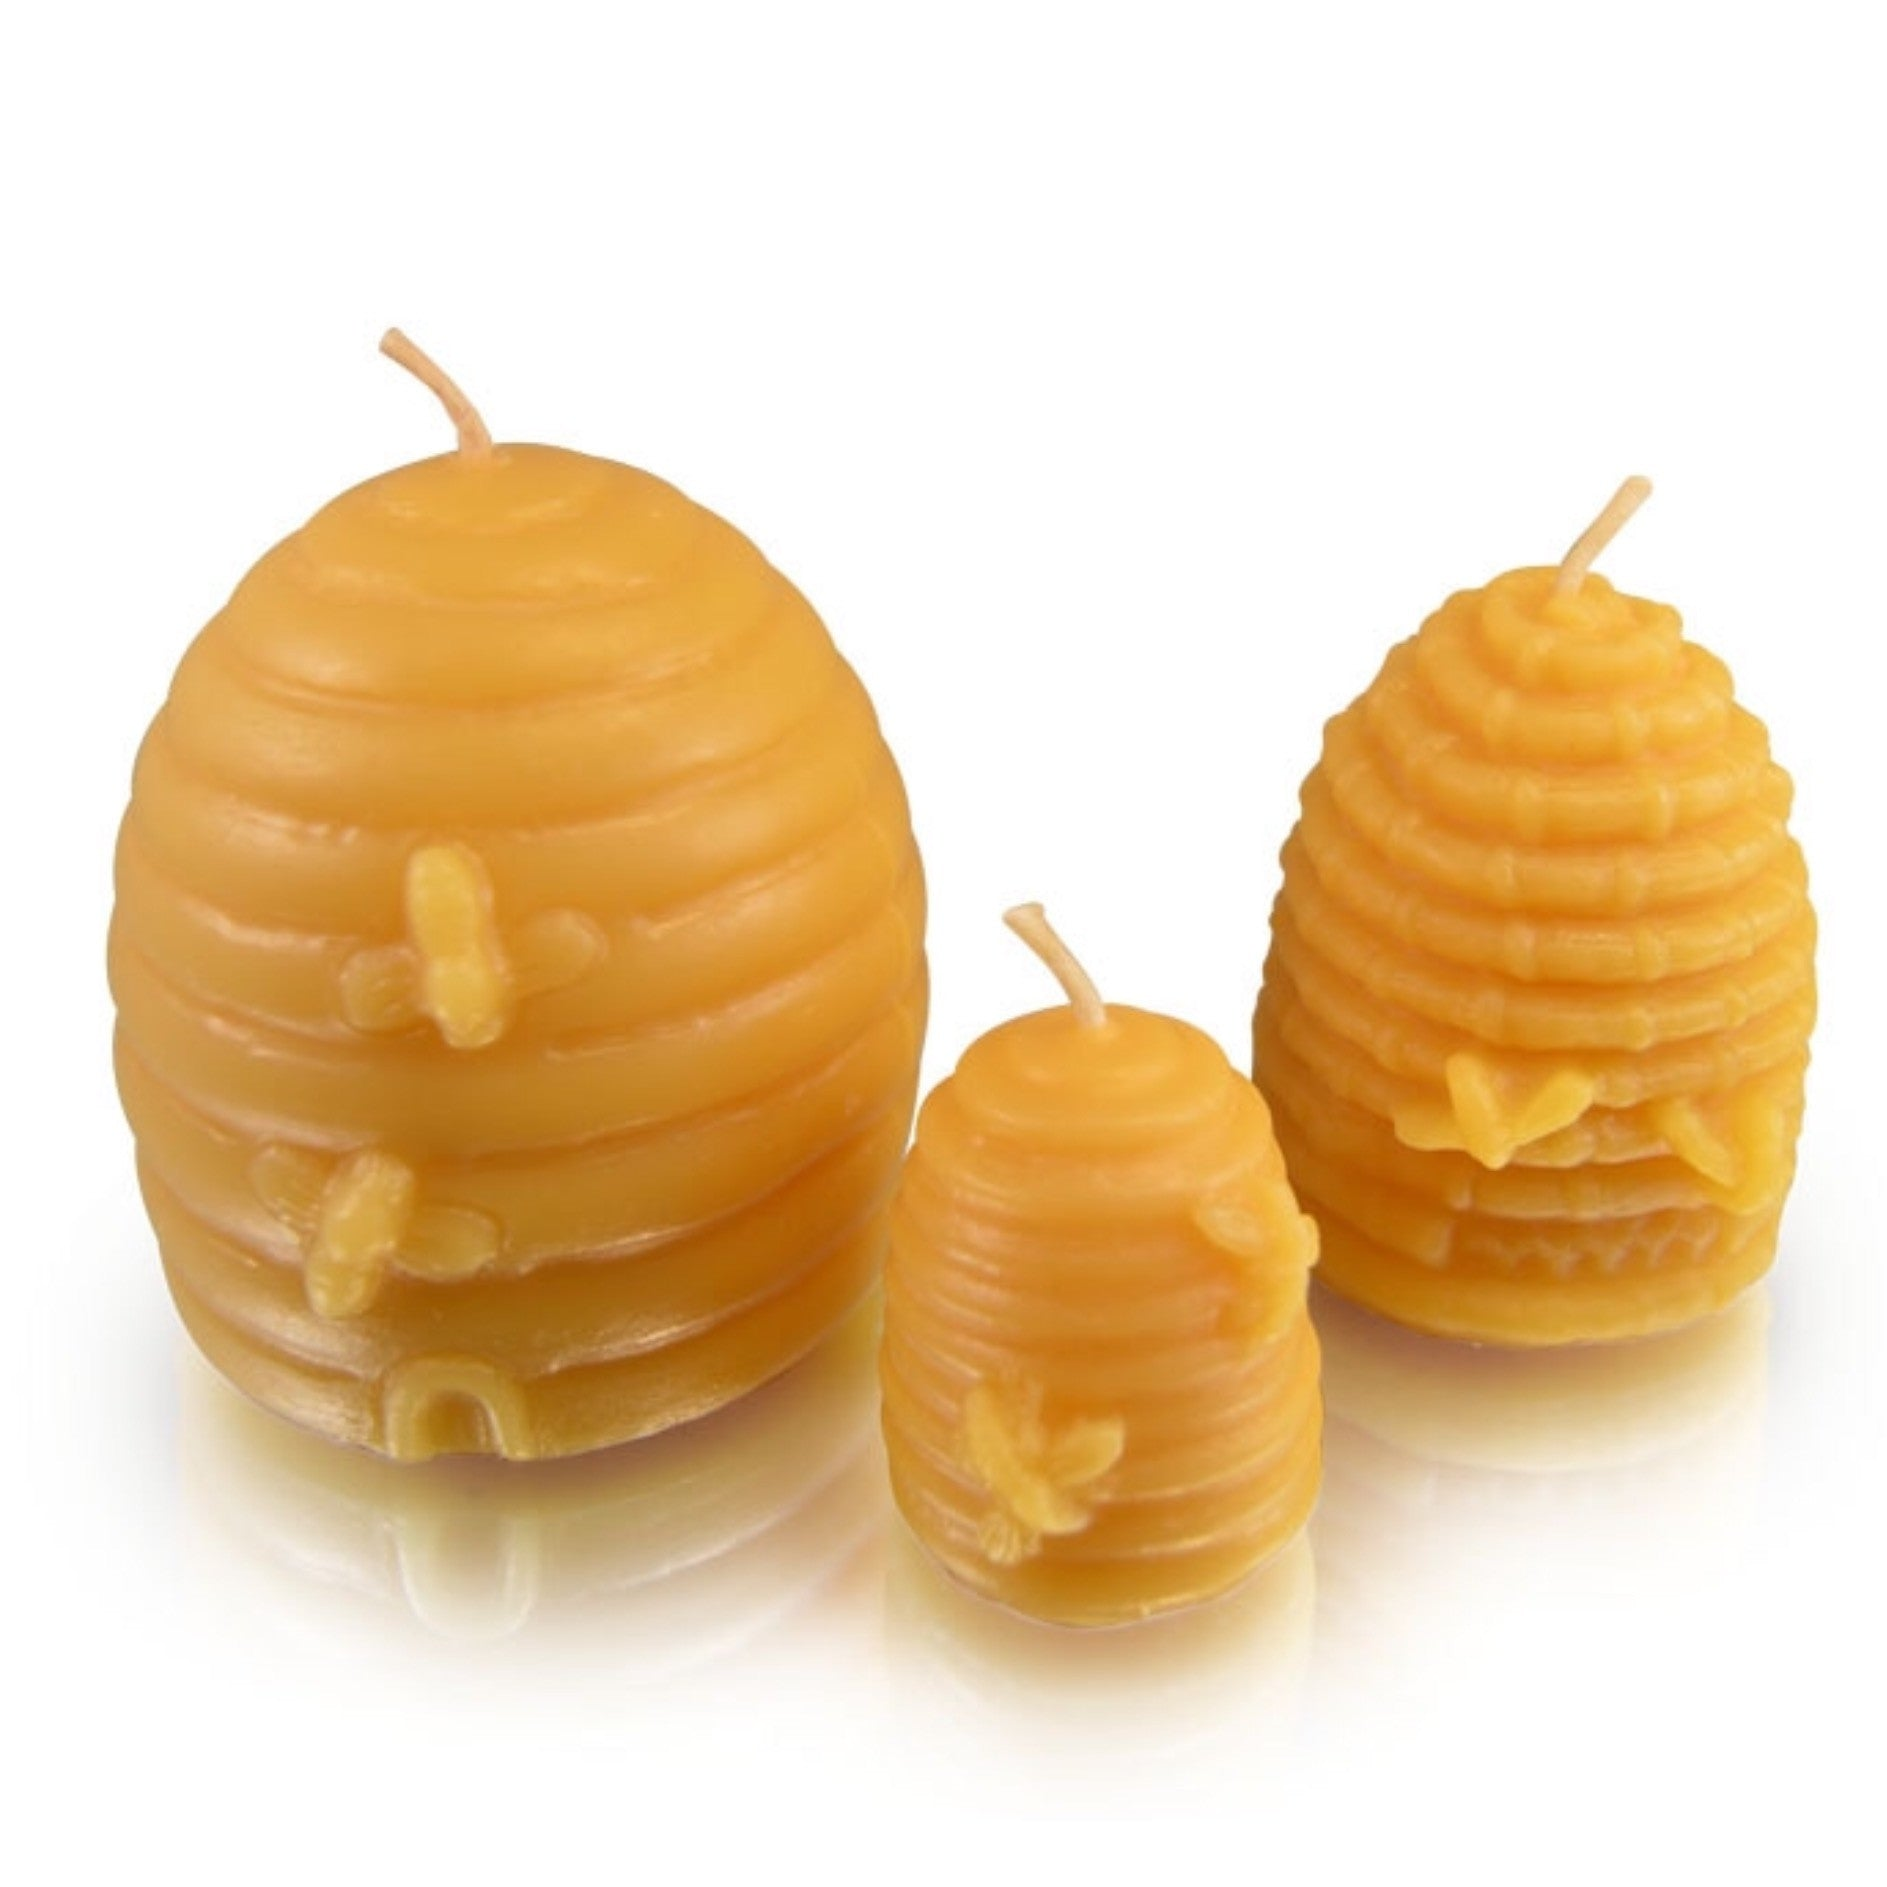 Bee Hive Beeswax Candle - Small - Celebrate Local, Shop The Best of Ohio